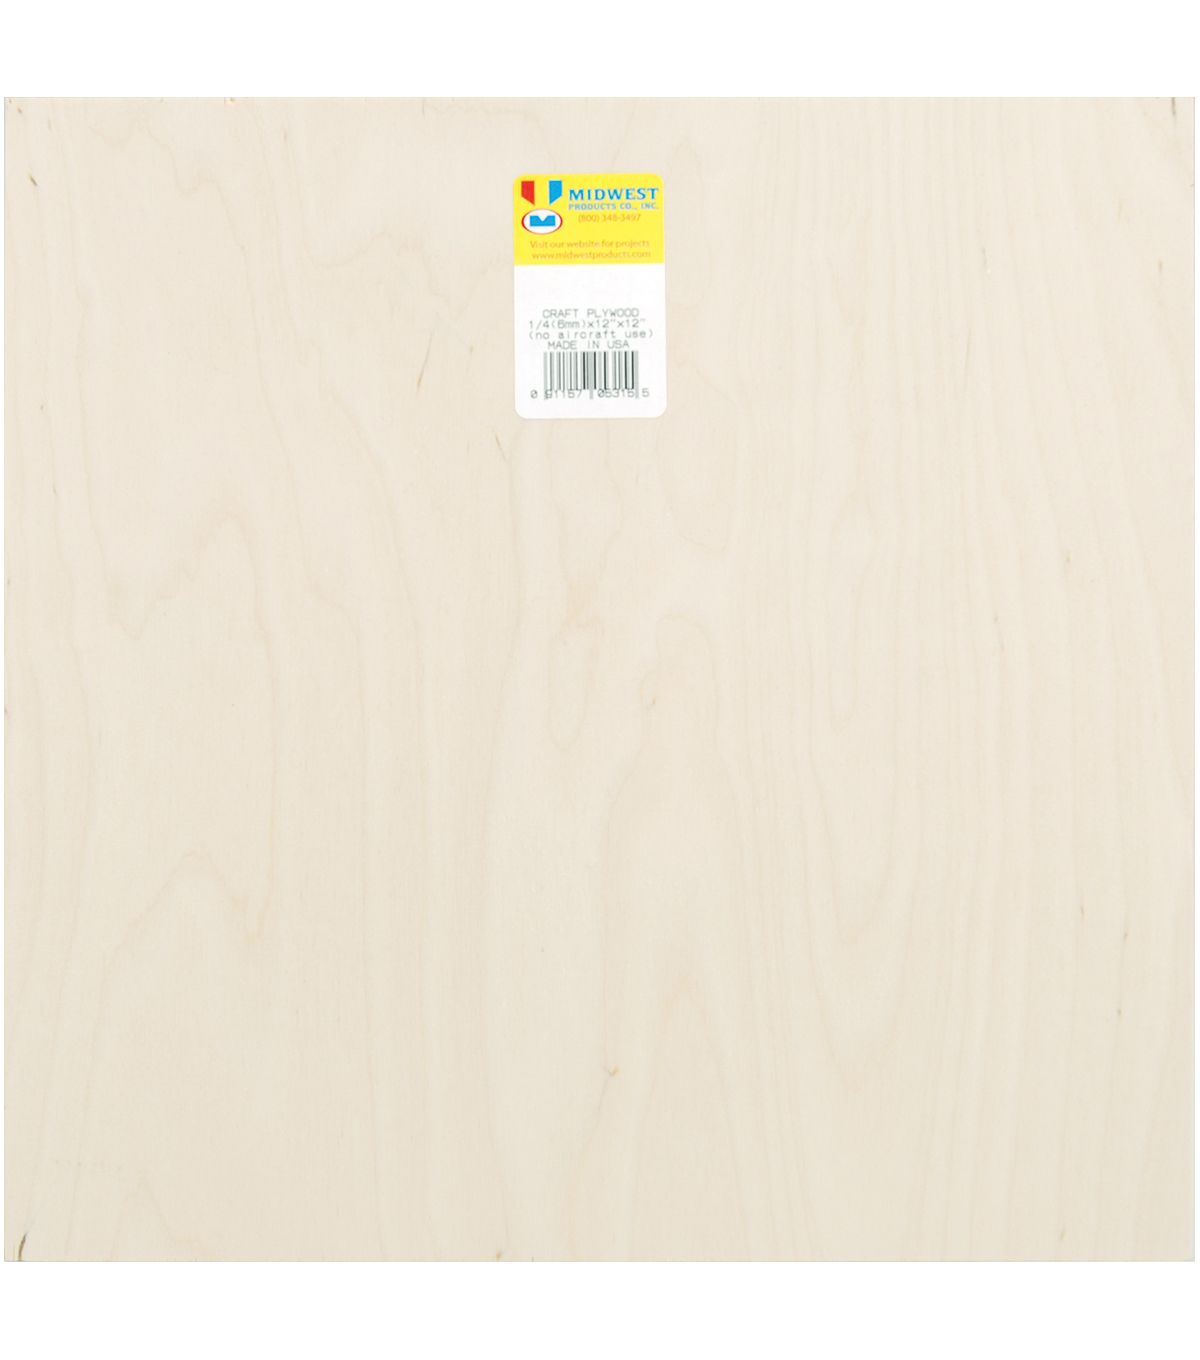 Midwest Products Craft 12 Plywood Sheet Plywood Sheets Wood Craft Supplies Wood Crafts Diy